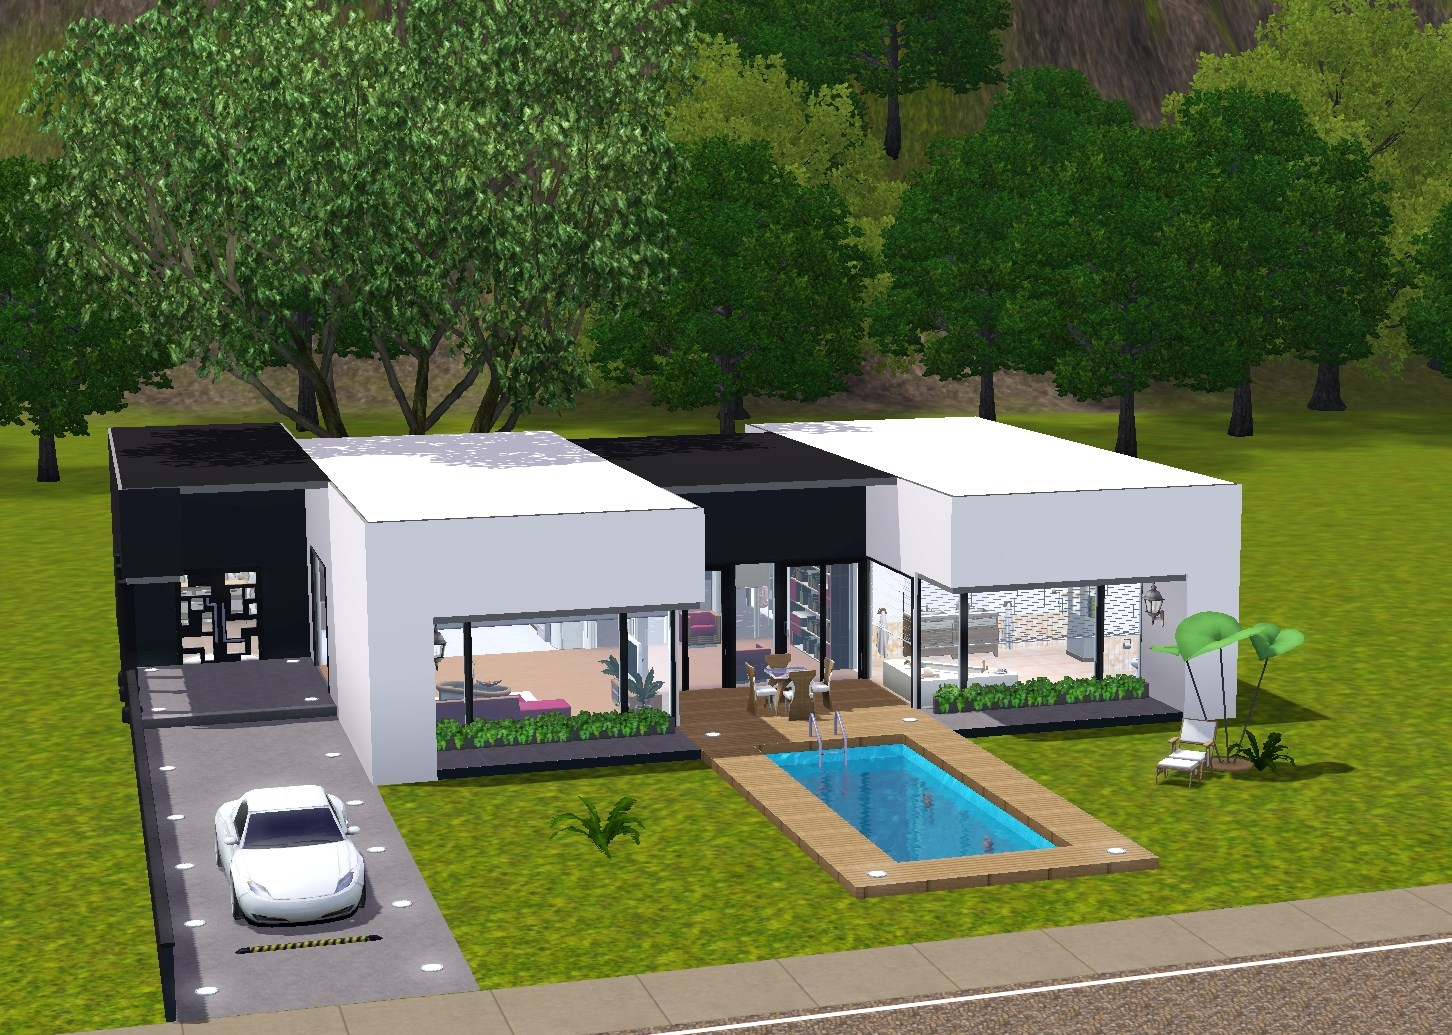 19 Sims 3 Blog: Modern Bungalow 1